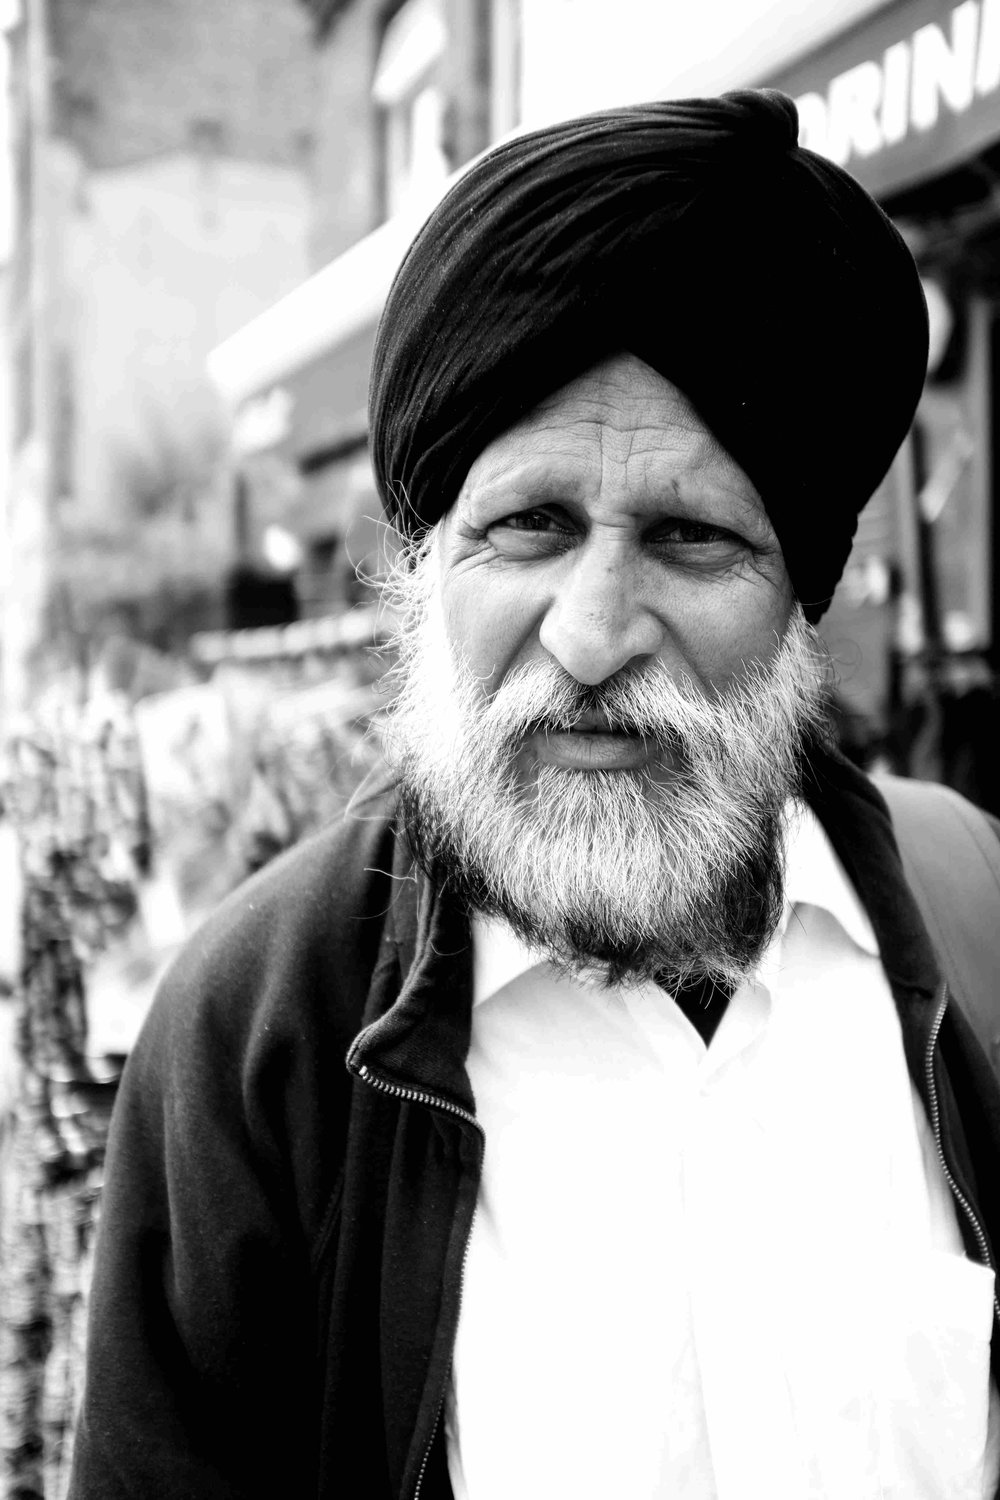 Punjabi retiree gets £30/pw allowance, free travel and healthcare